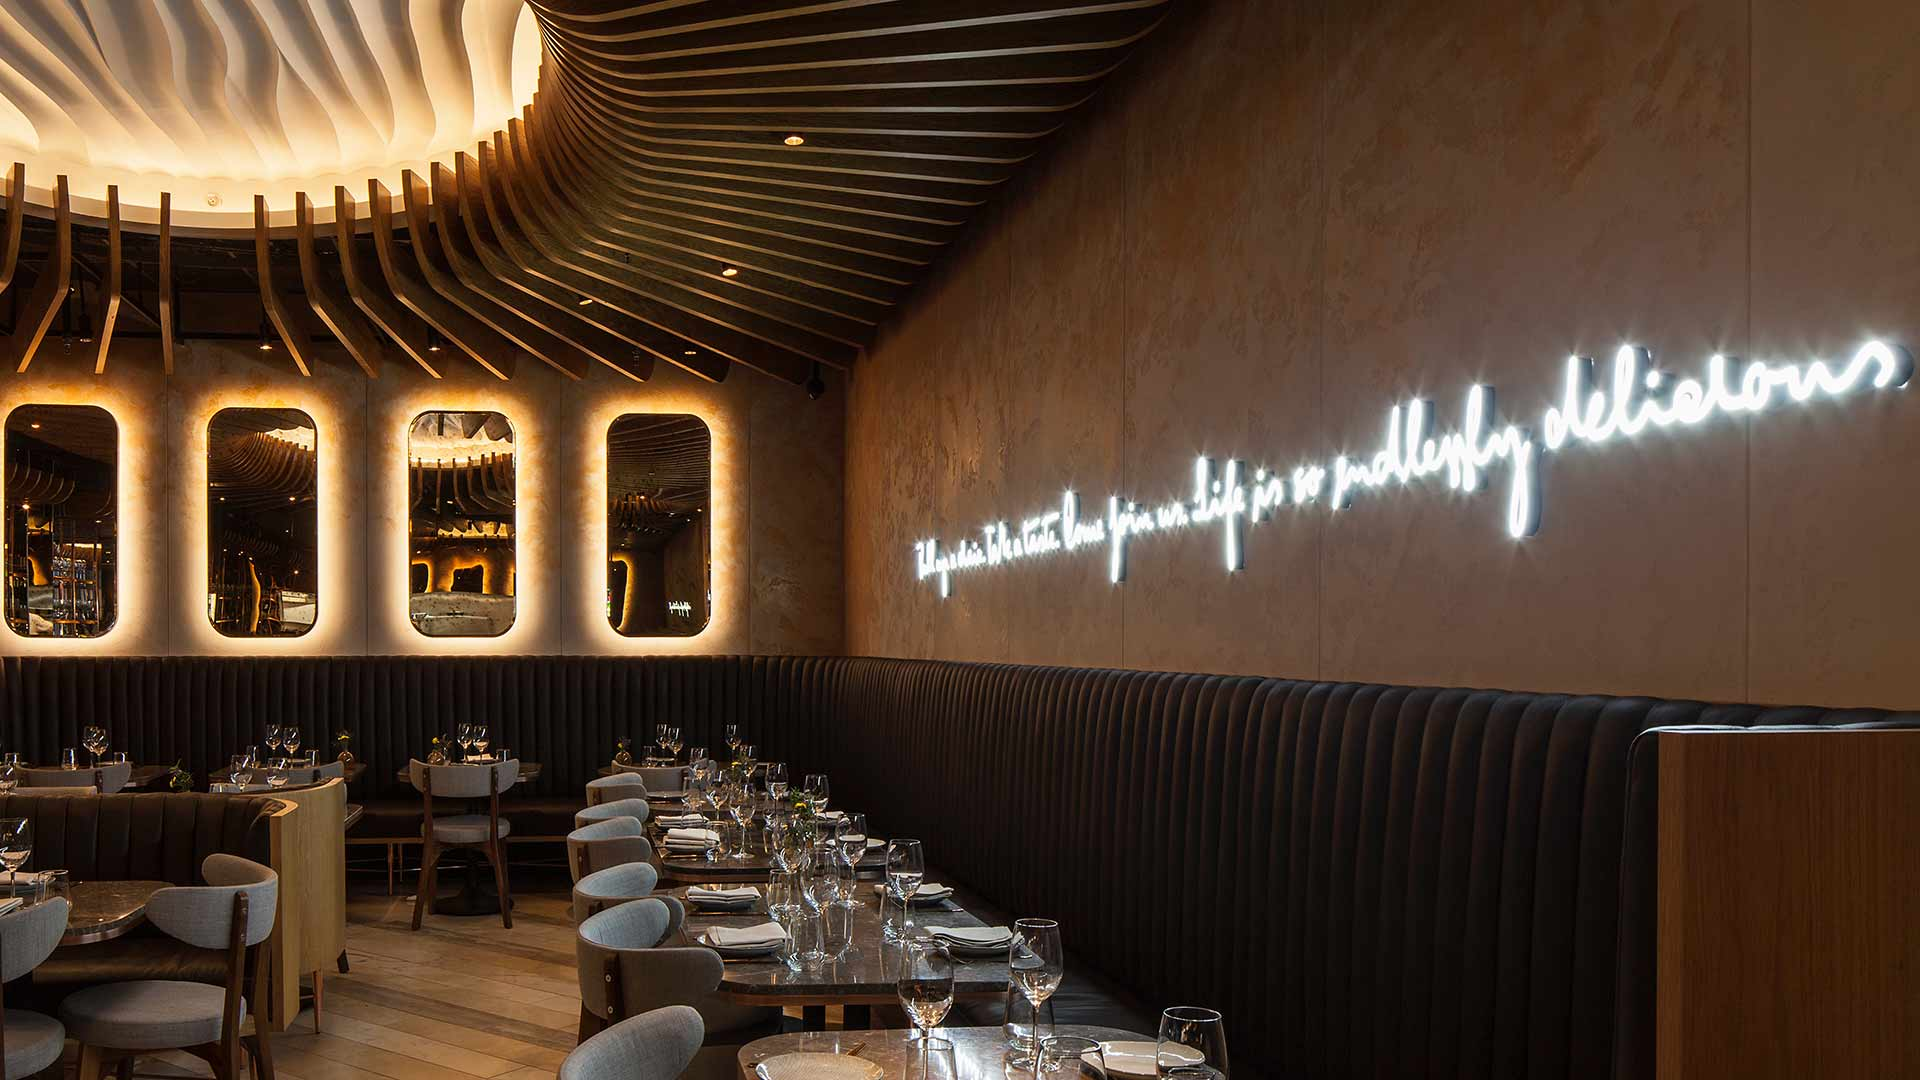 Architectural Lighting Design Mirrors Halo Glow Illuminated Statement Ceiling Restaurant Consultants Nulty